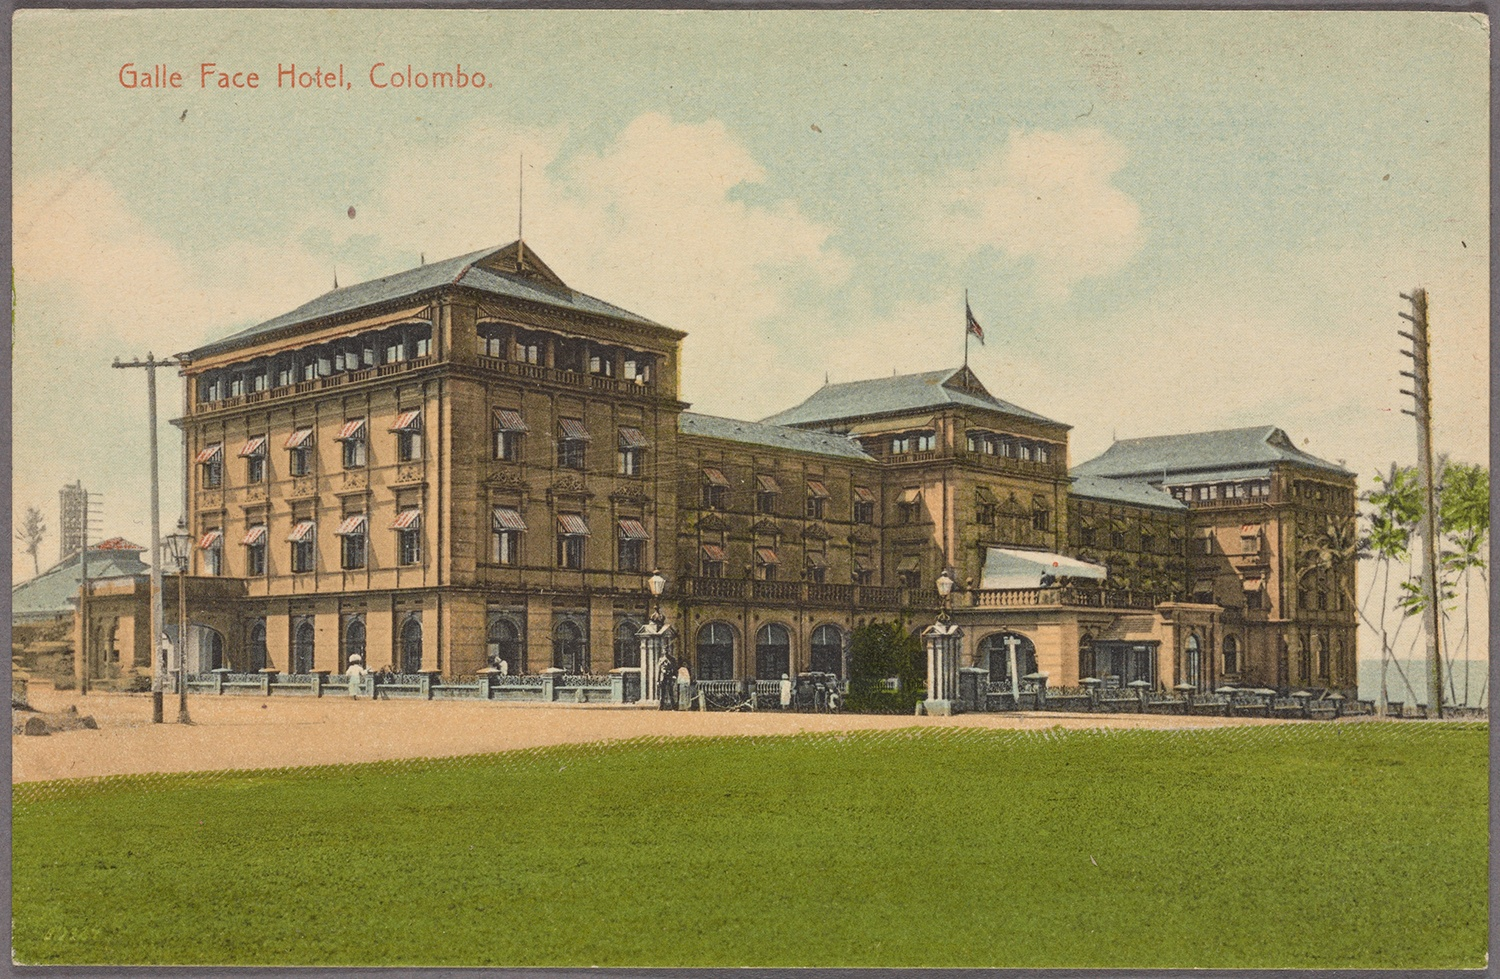 Galle Face Hotel, c. 1910. Courtesy of the New York Public Library.